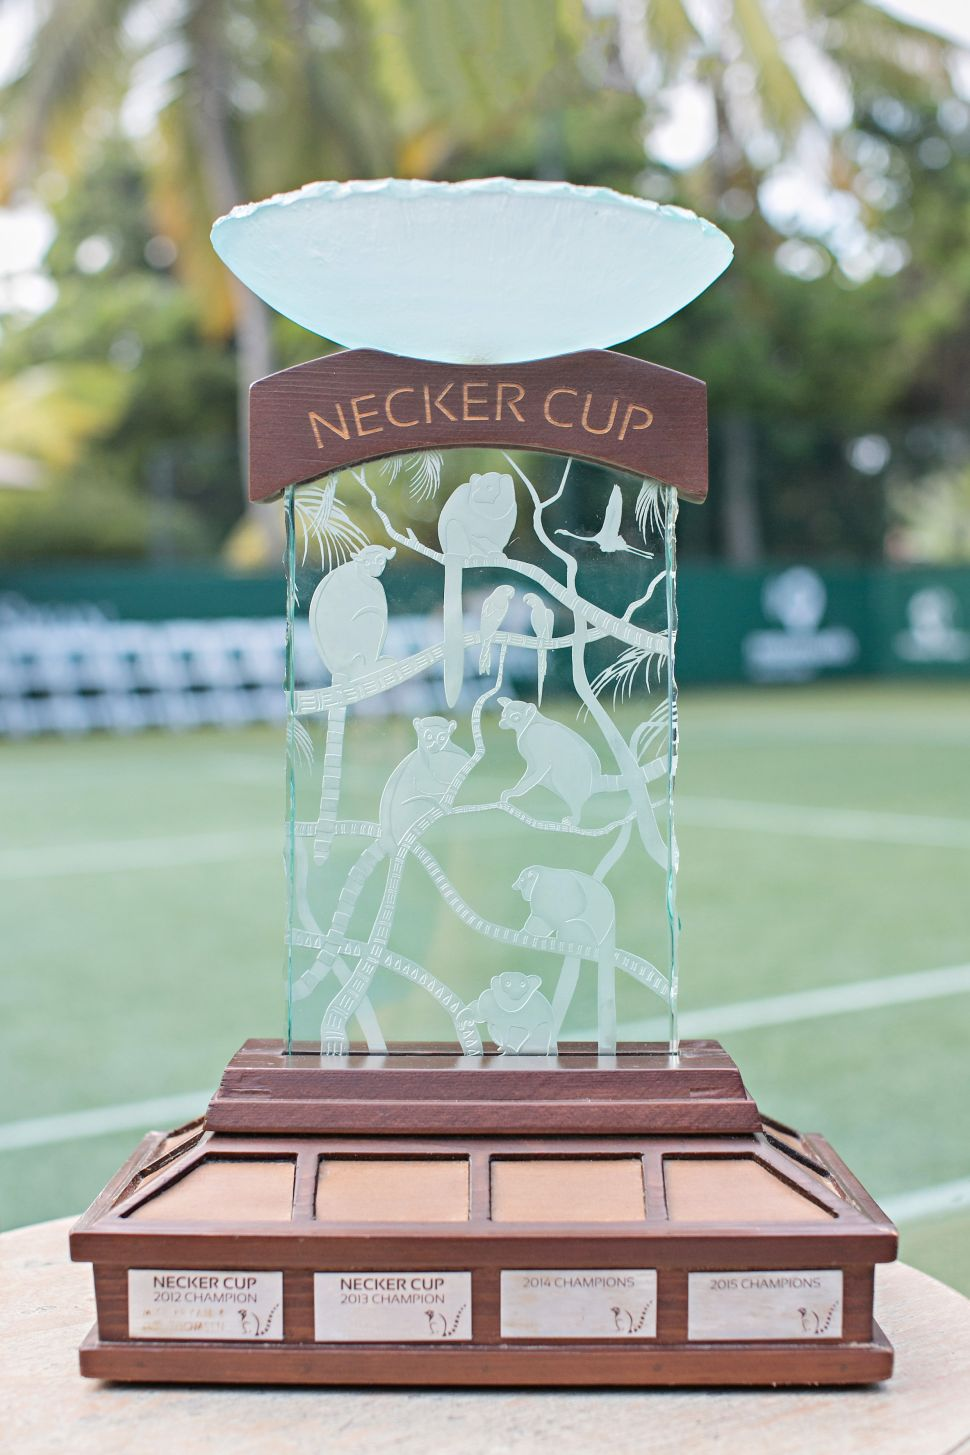 (Photo: Necker Cup).